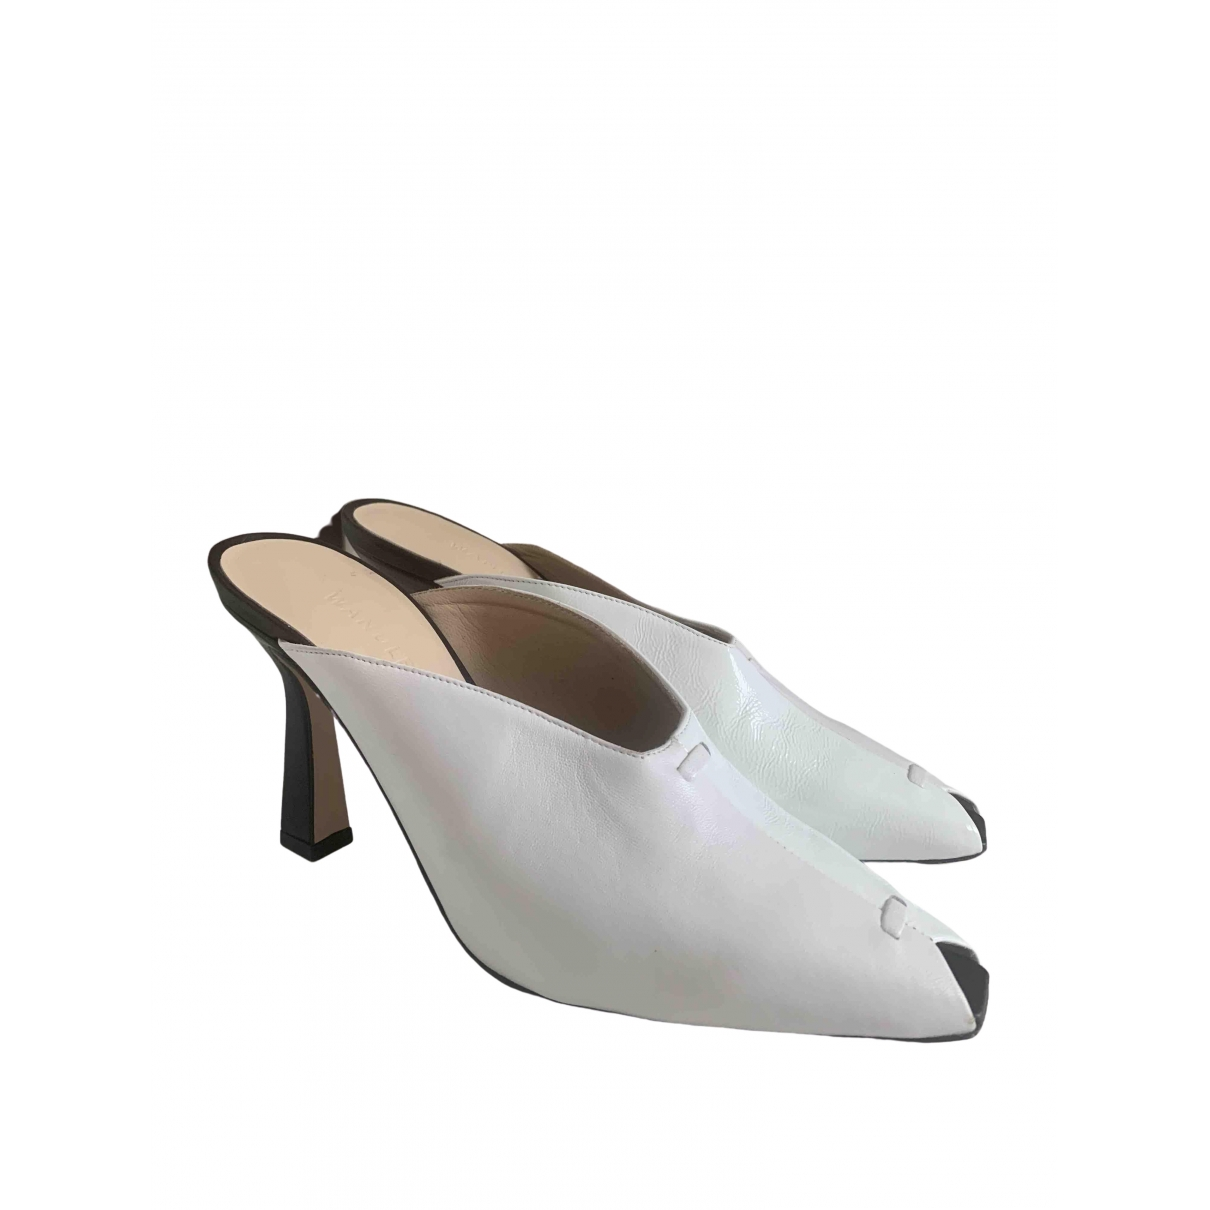 Wandler \N White Patent leather Sandals for Women 38 EU